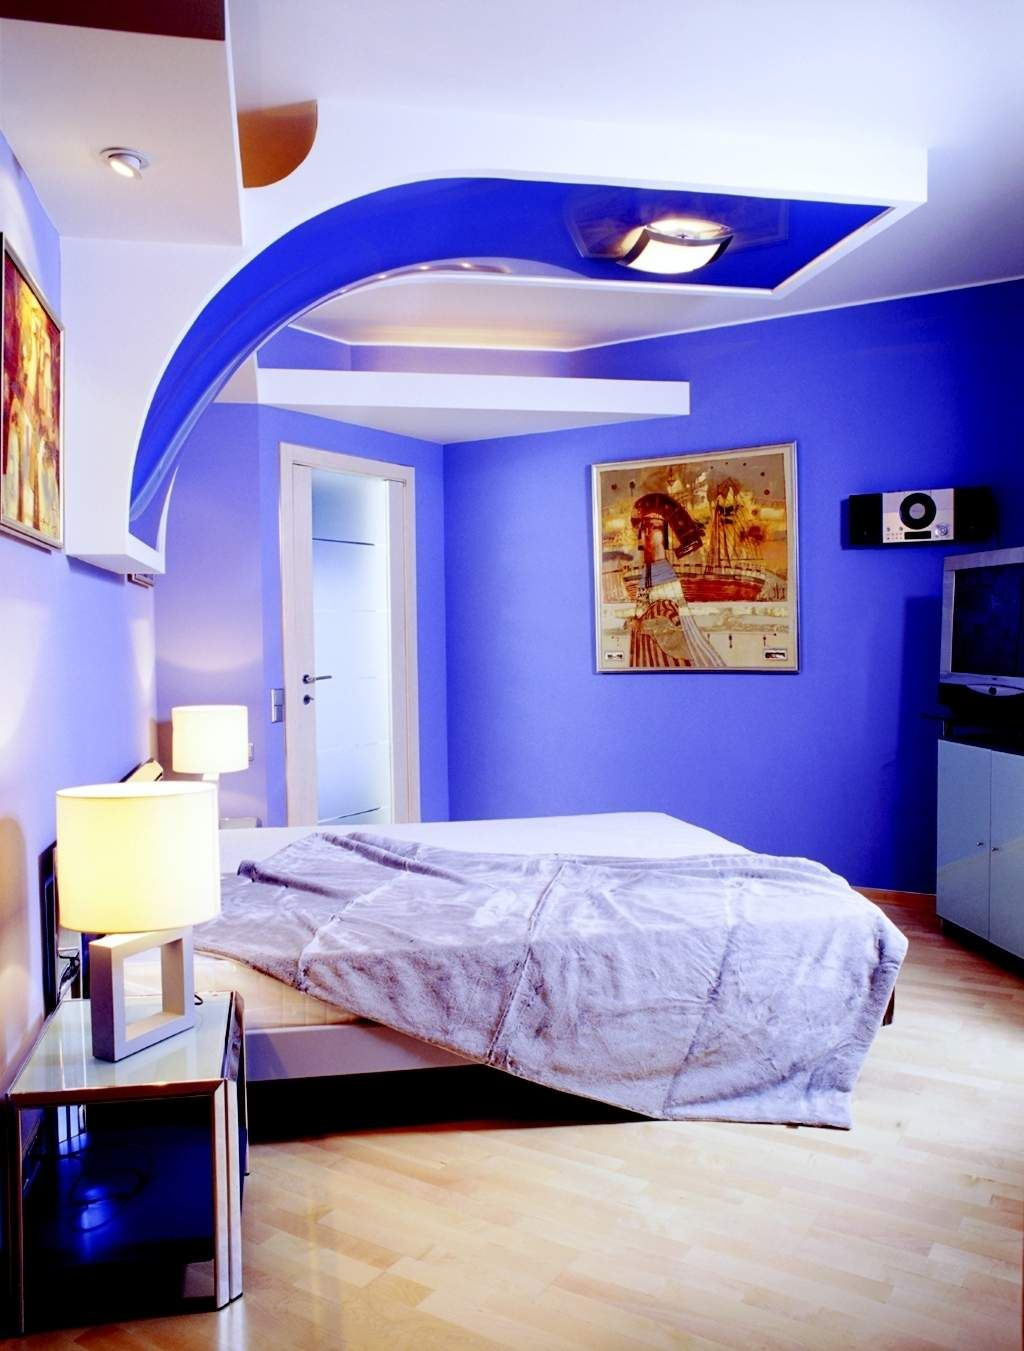 Simple Bedroom Wall Painting Kids Bedroom Futuristic Design Of Boys Bedroom In Bright Blue And